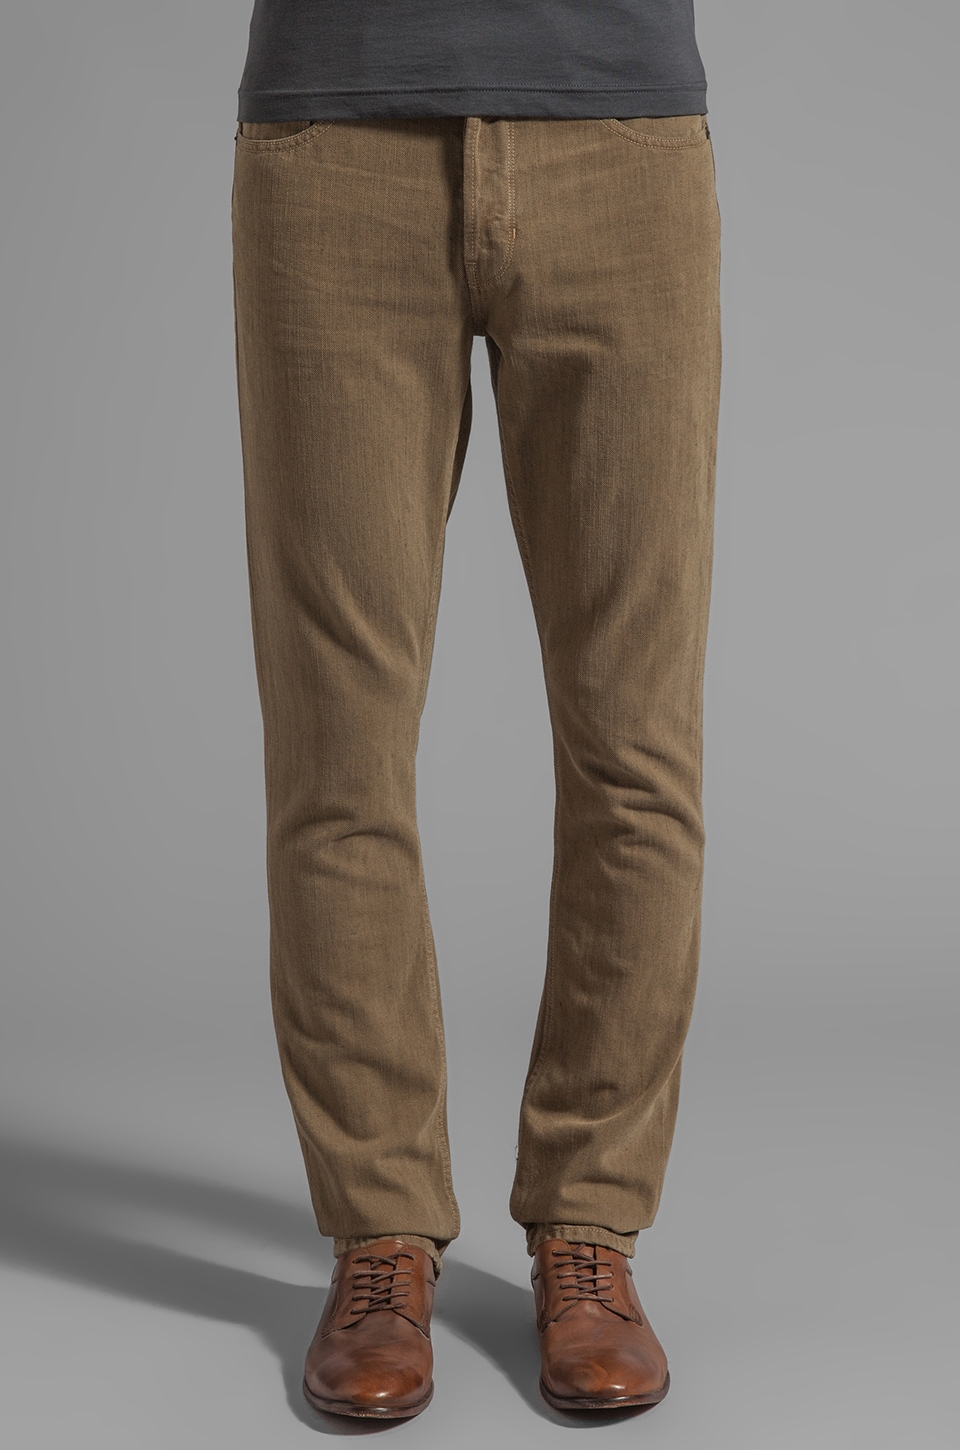 Paige Denim The Eco Buck Series Federal Slim w/ Button Fly in Seed